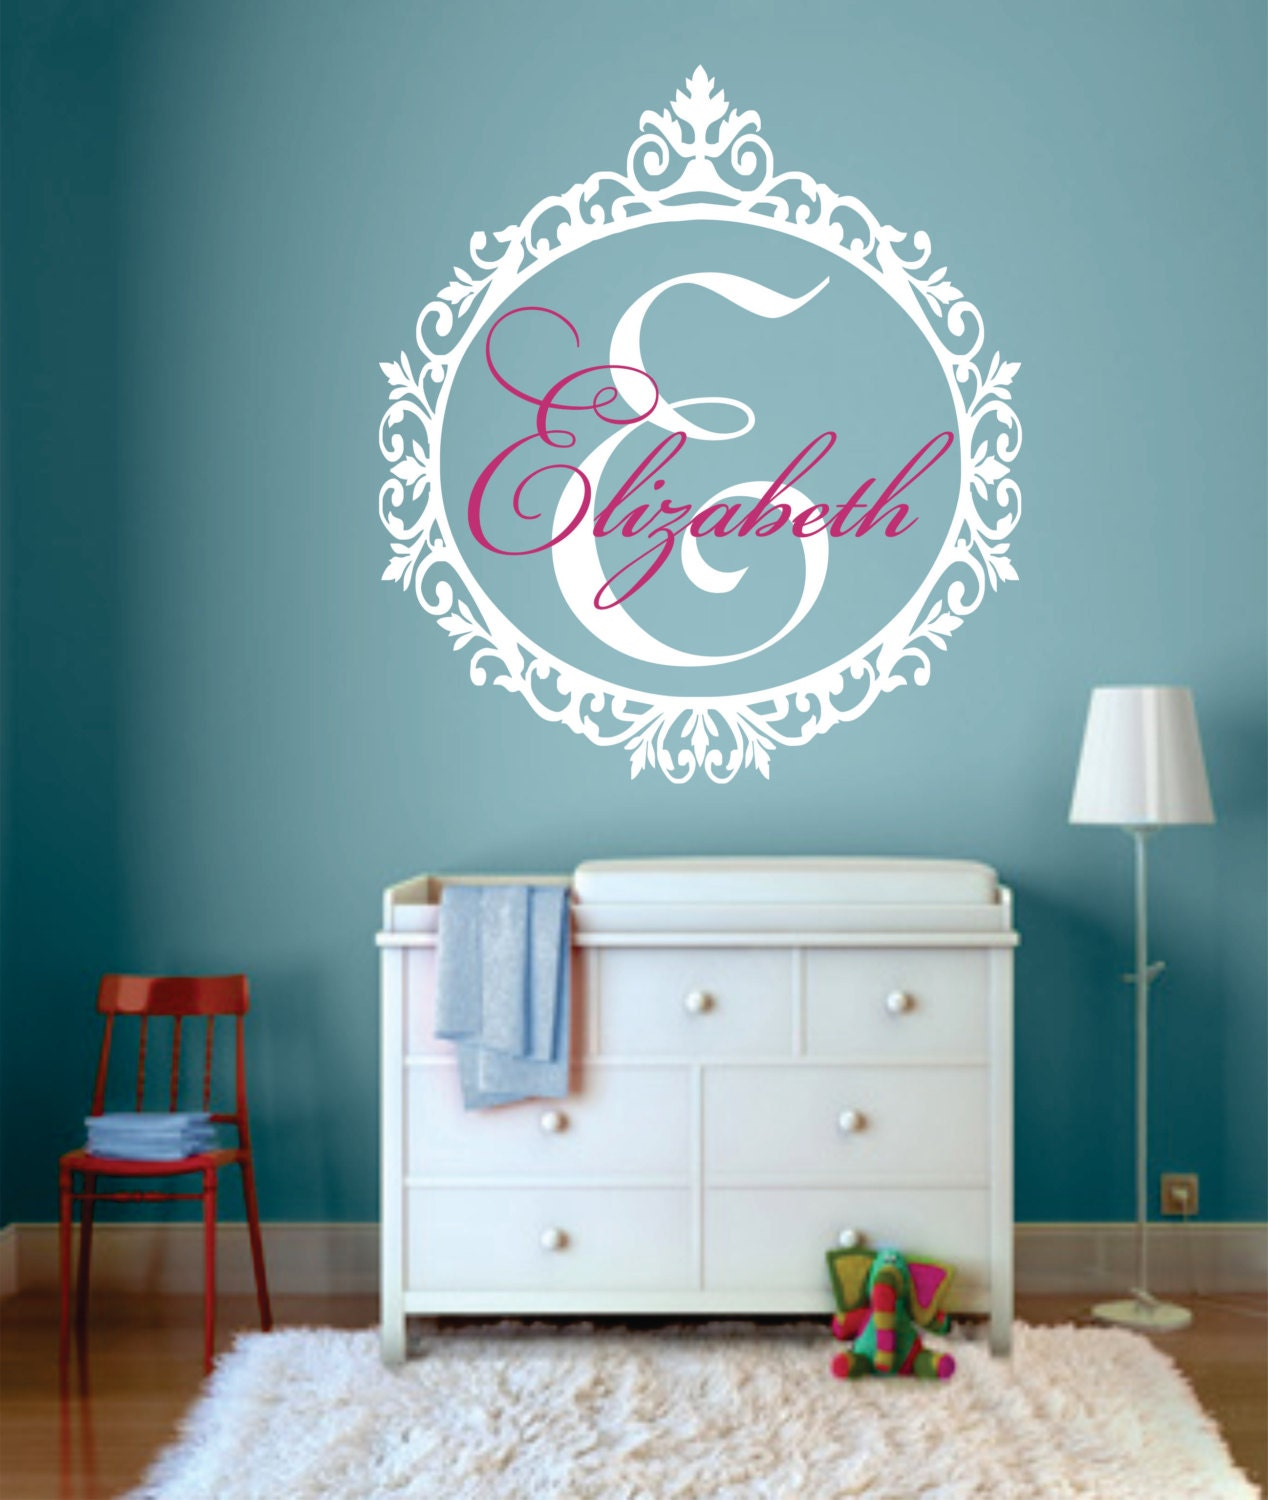 personalized name wall decal monogram wall decal shabby chic. Black Bedroom Furniture Sets. Home Design Ideas